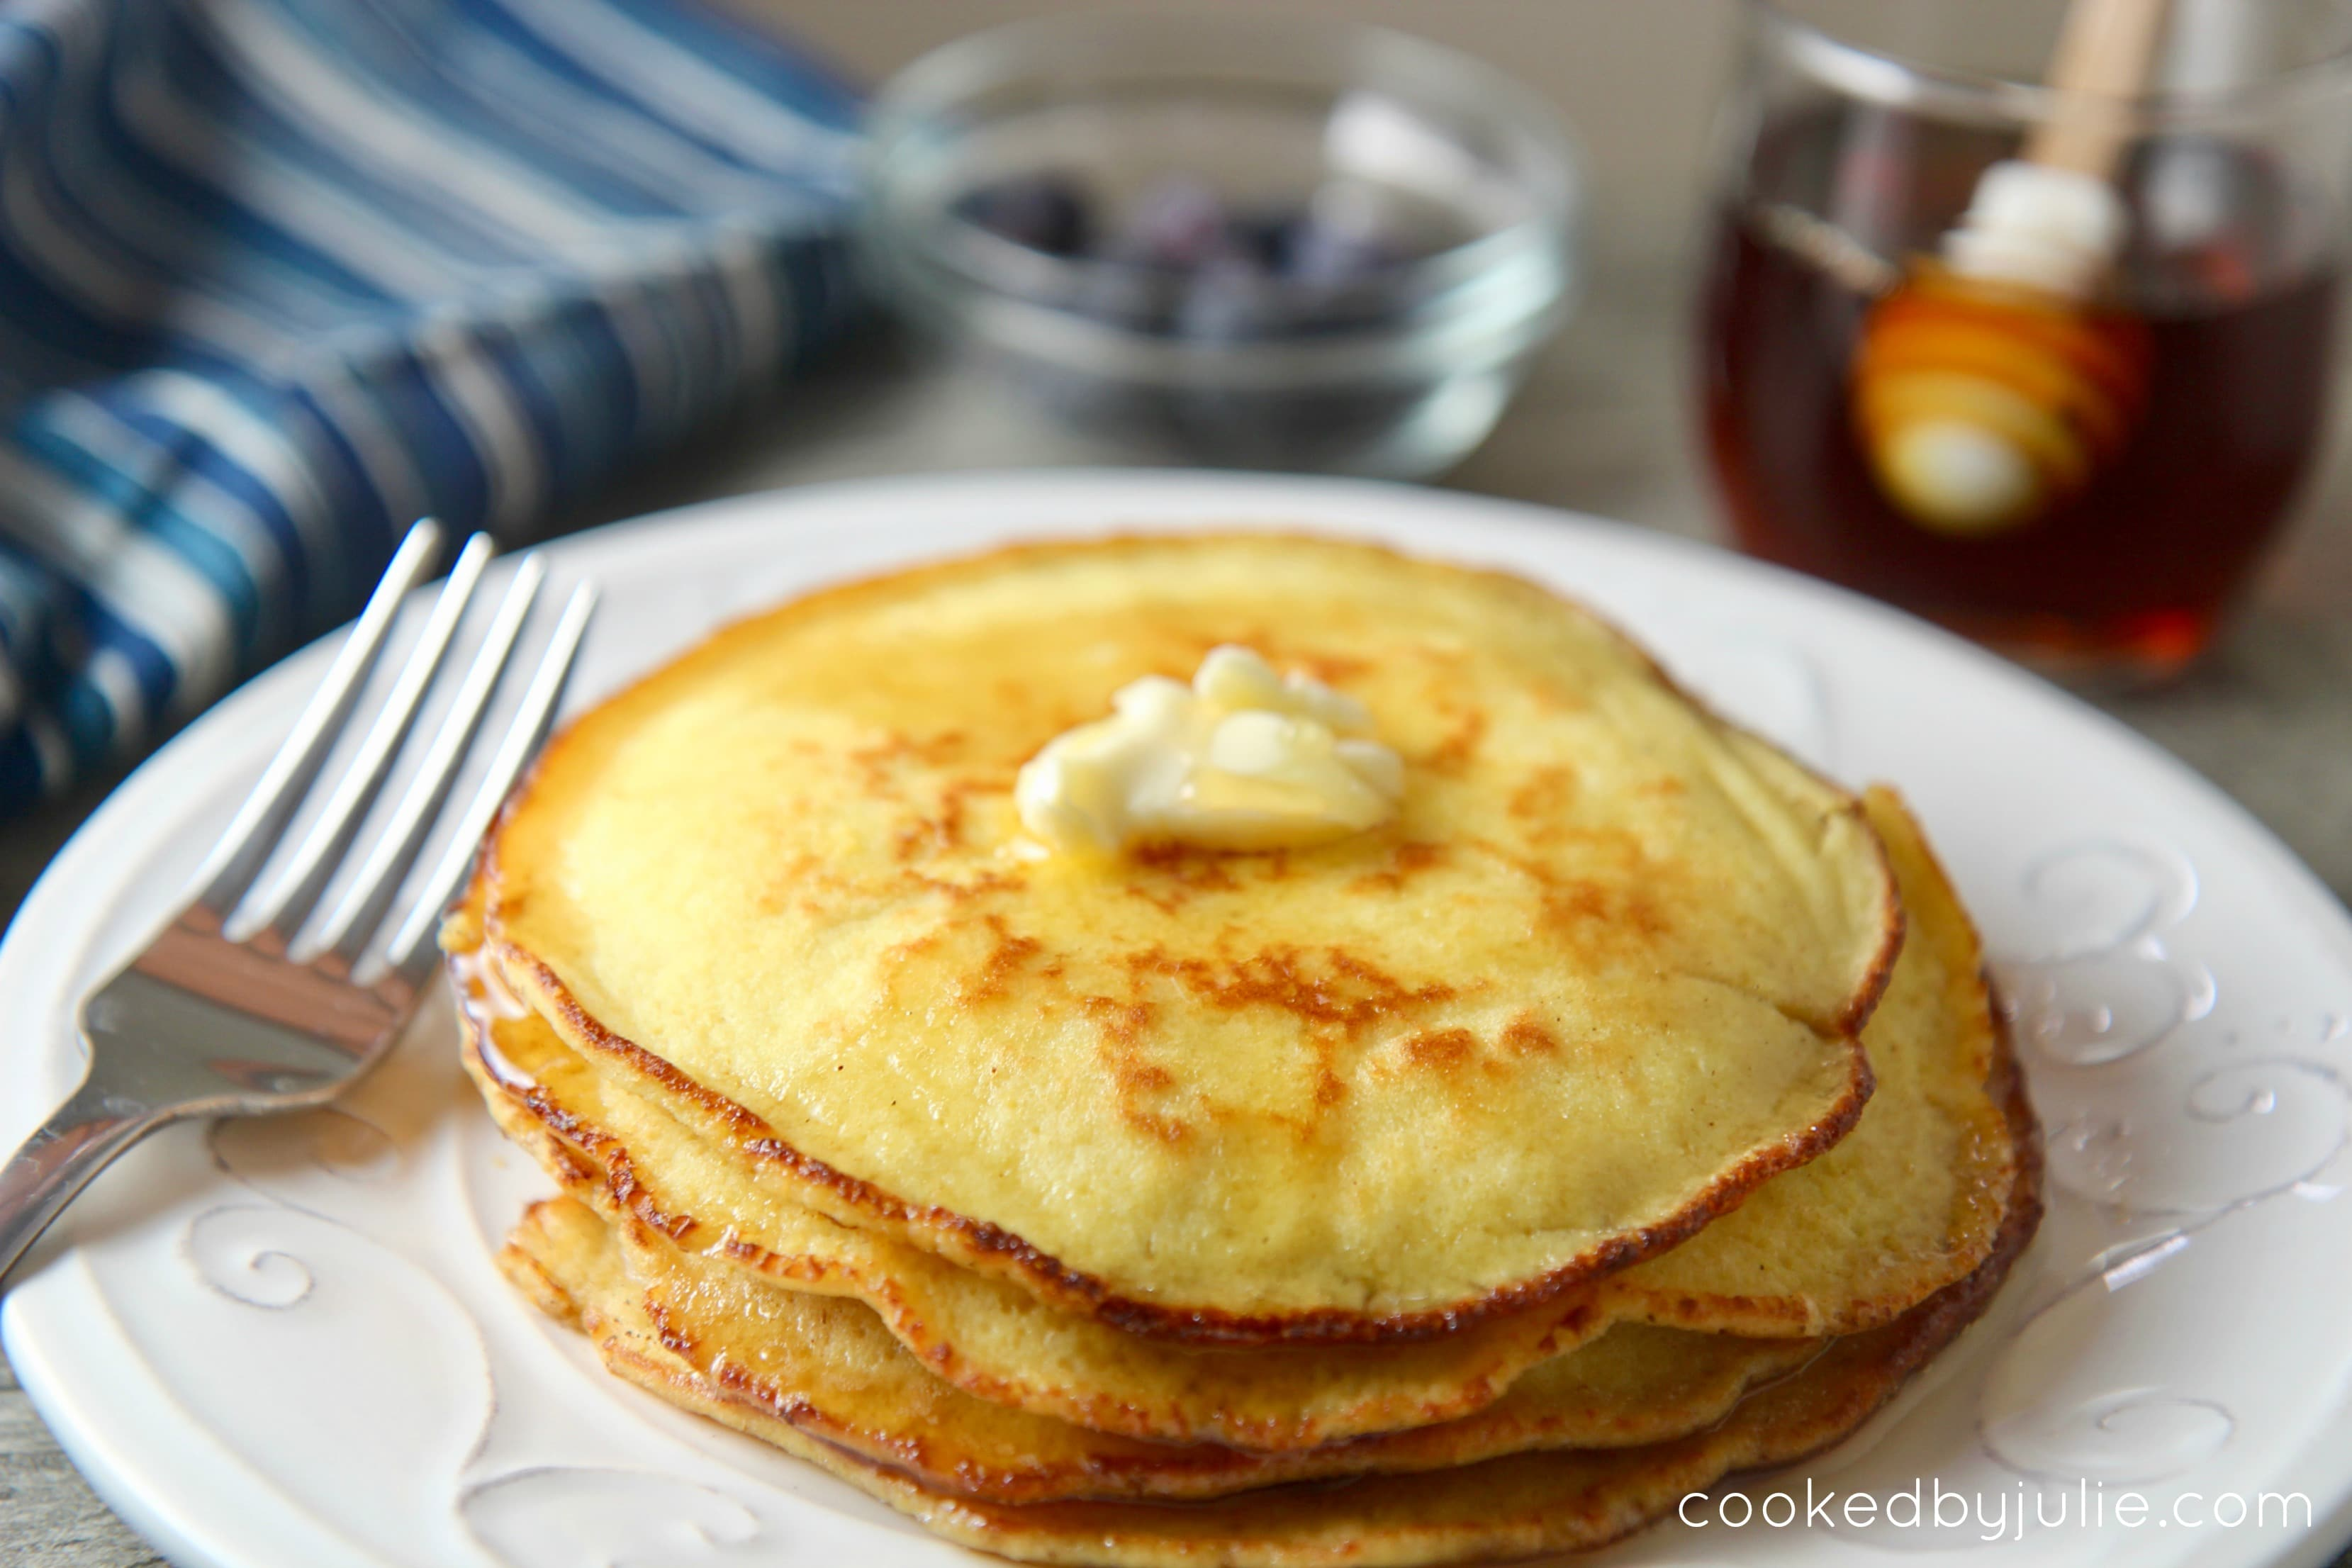 Easy 10-minute keto pancakes with syrup and butter.